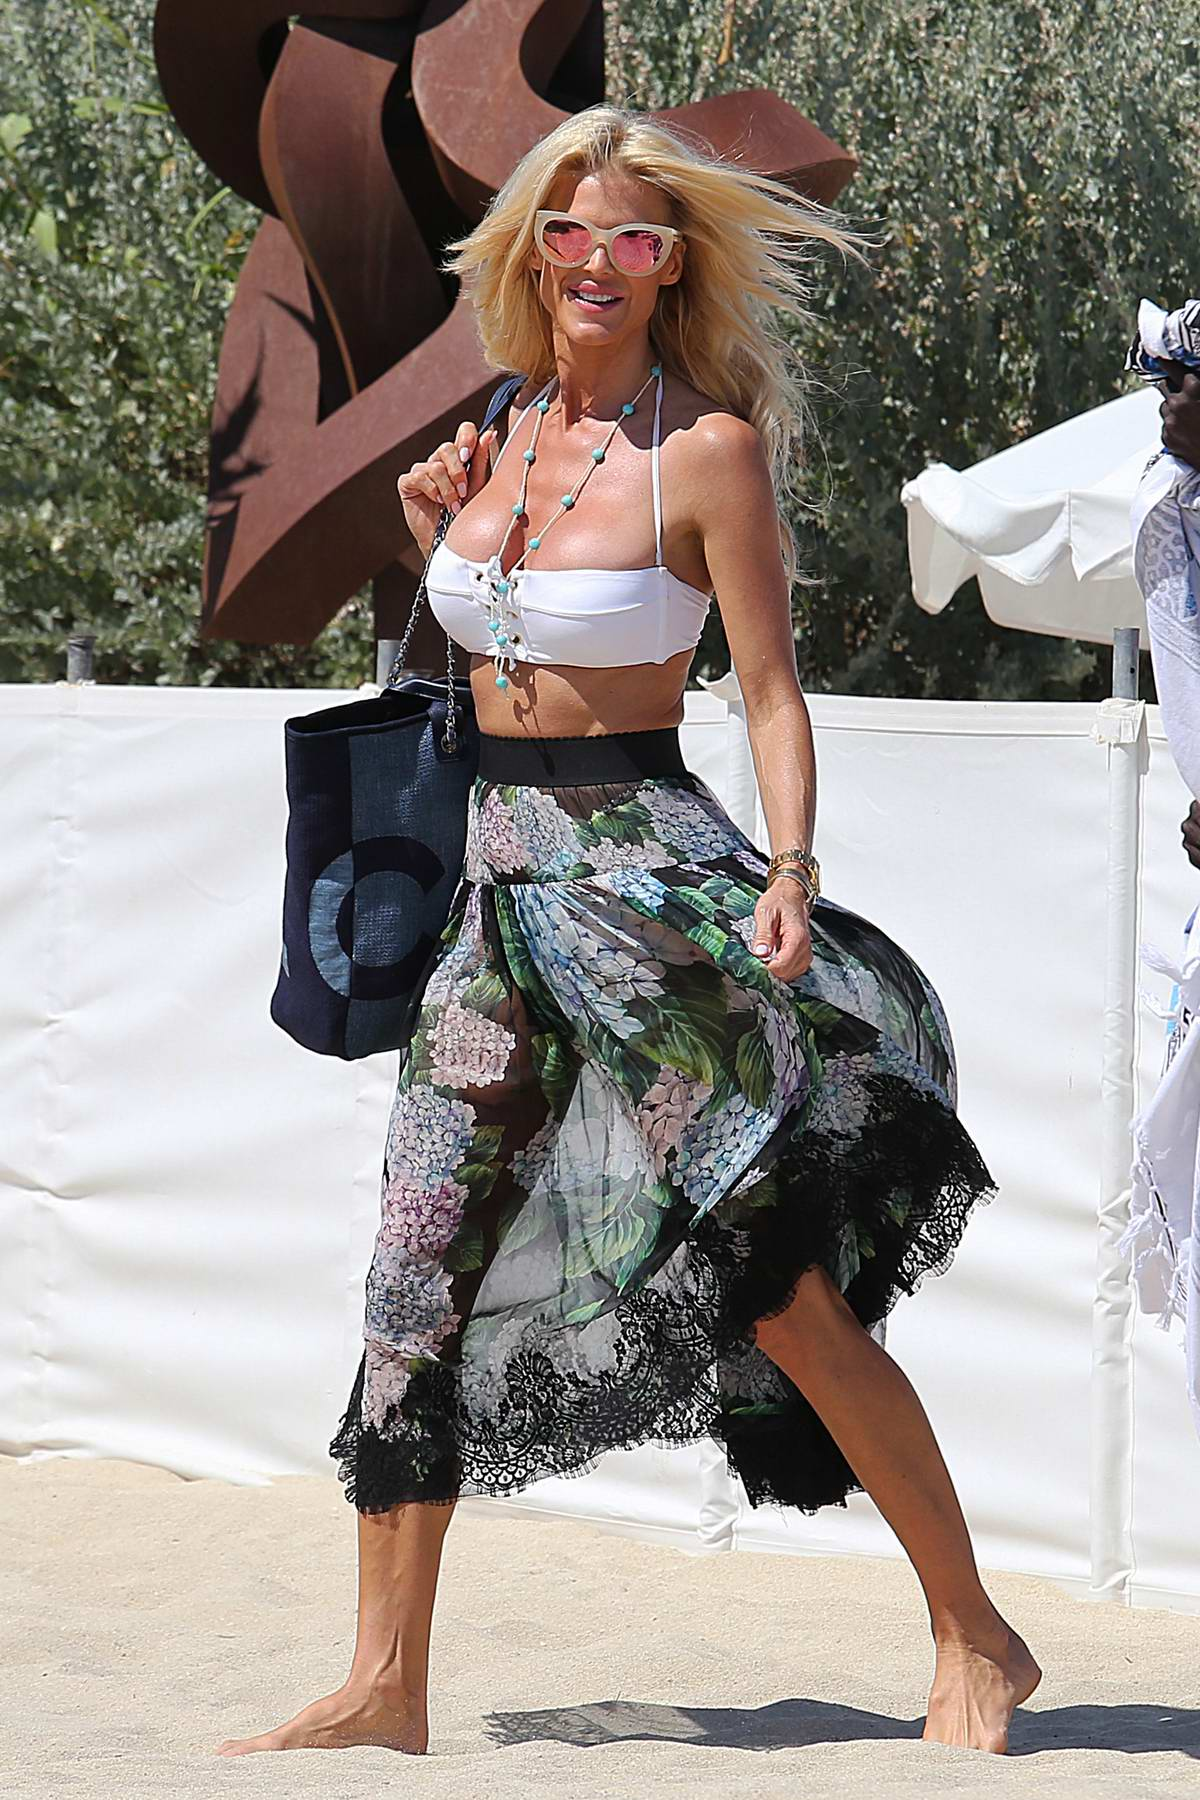 Victoria Silvstedt wears a white bikini top and floral skirt as she arrives at Club 55 in Saint Tropez, France